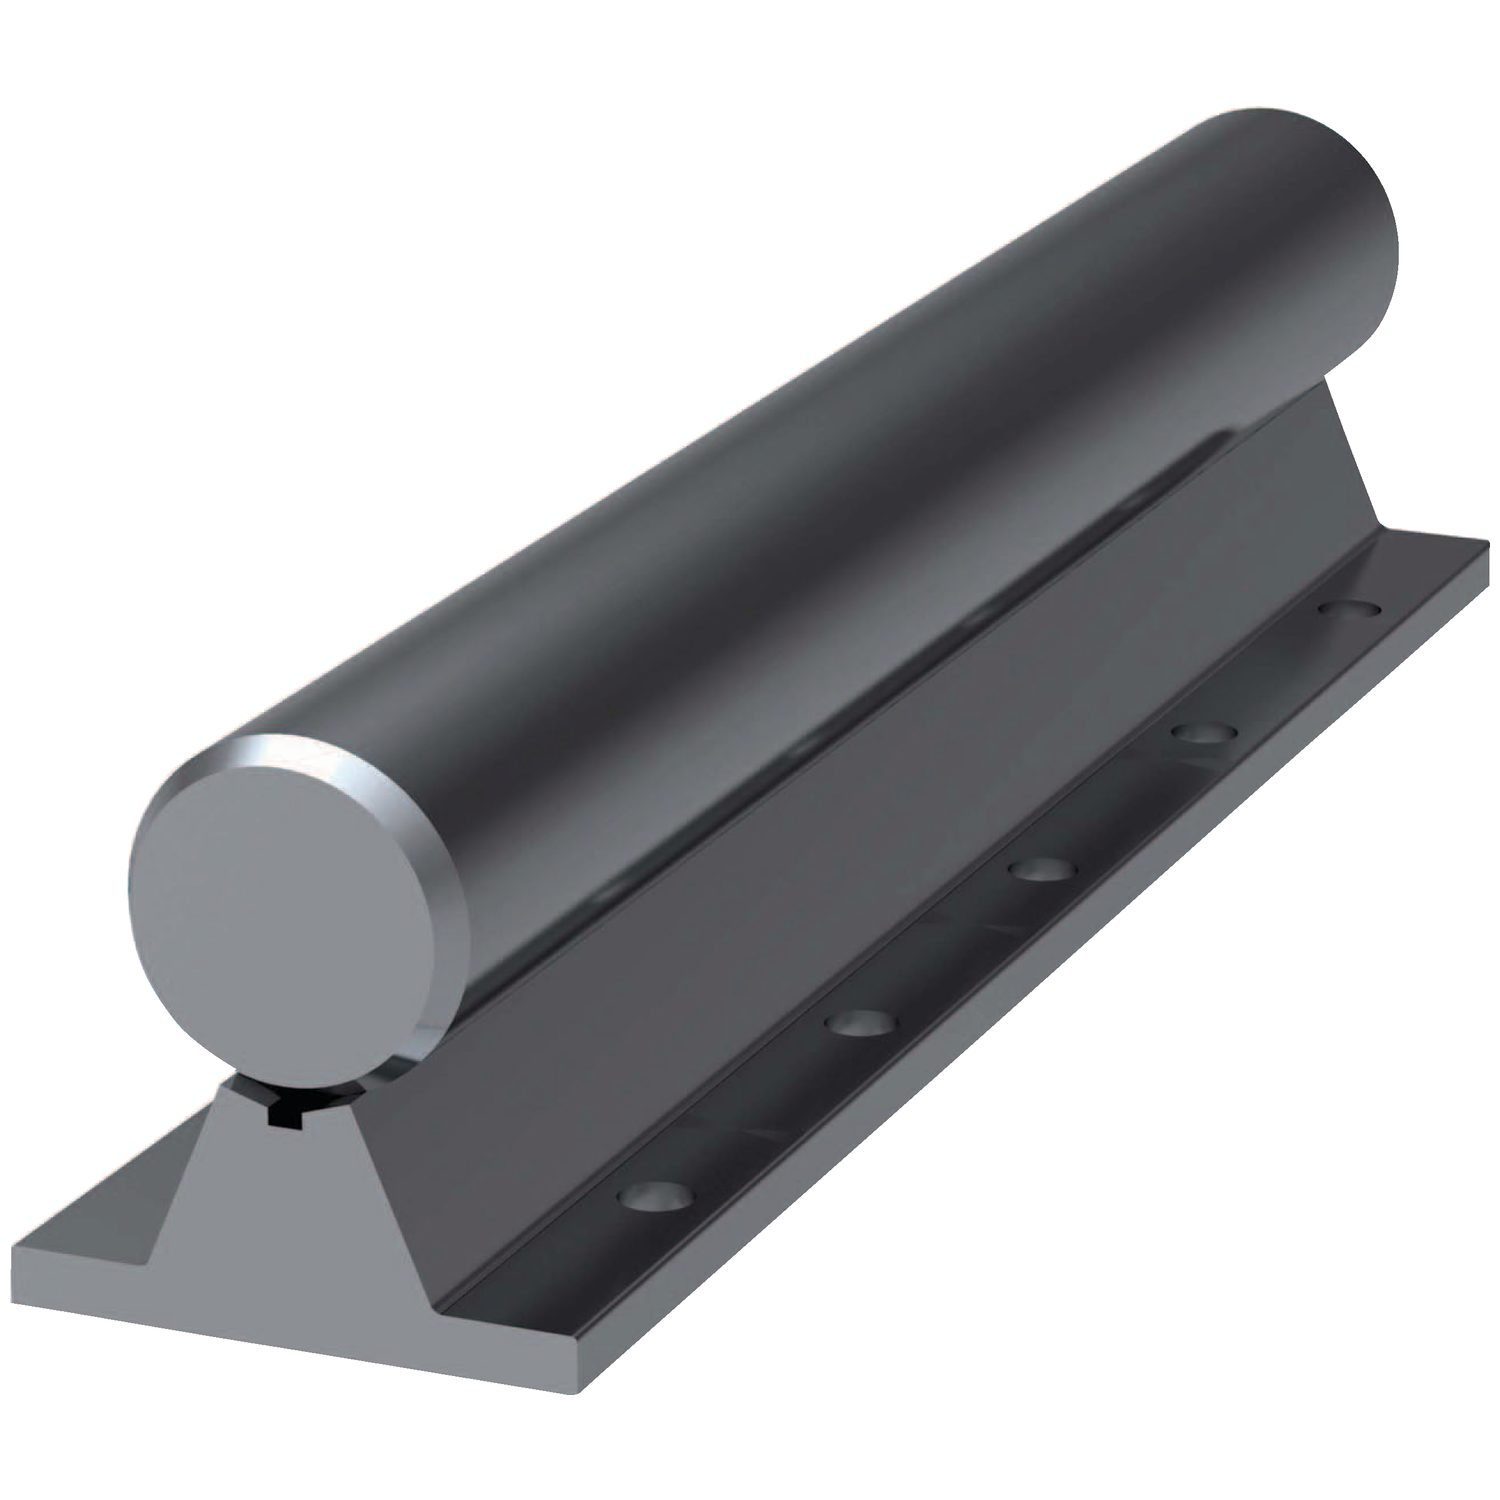 25Ø Shaft Support Rails Shaft support rail for 25mm shaft. Complete with shaft, up to 3 metres long